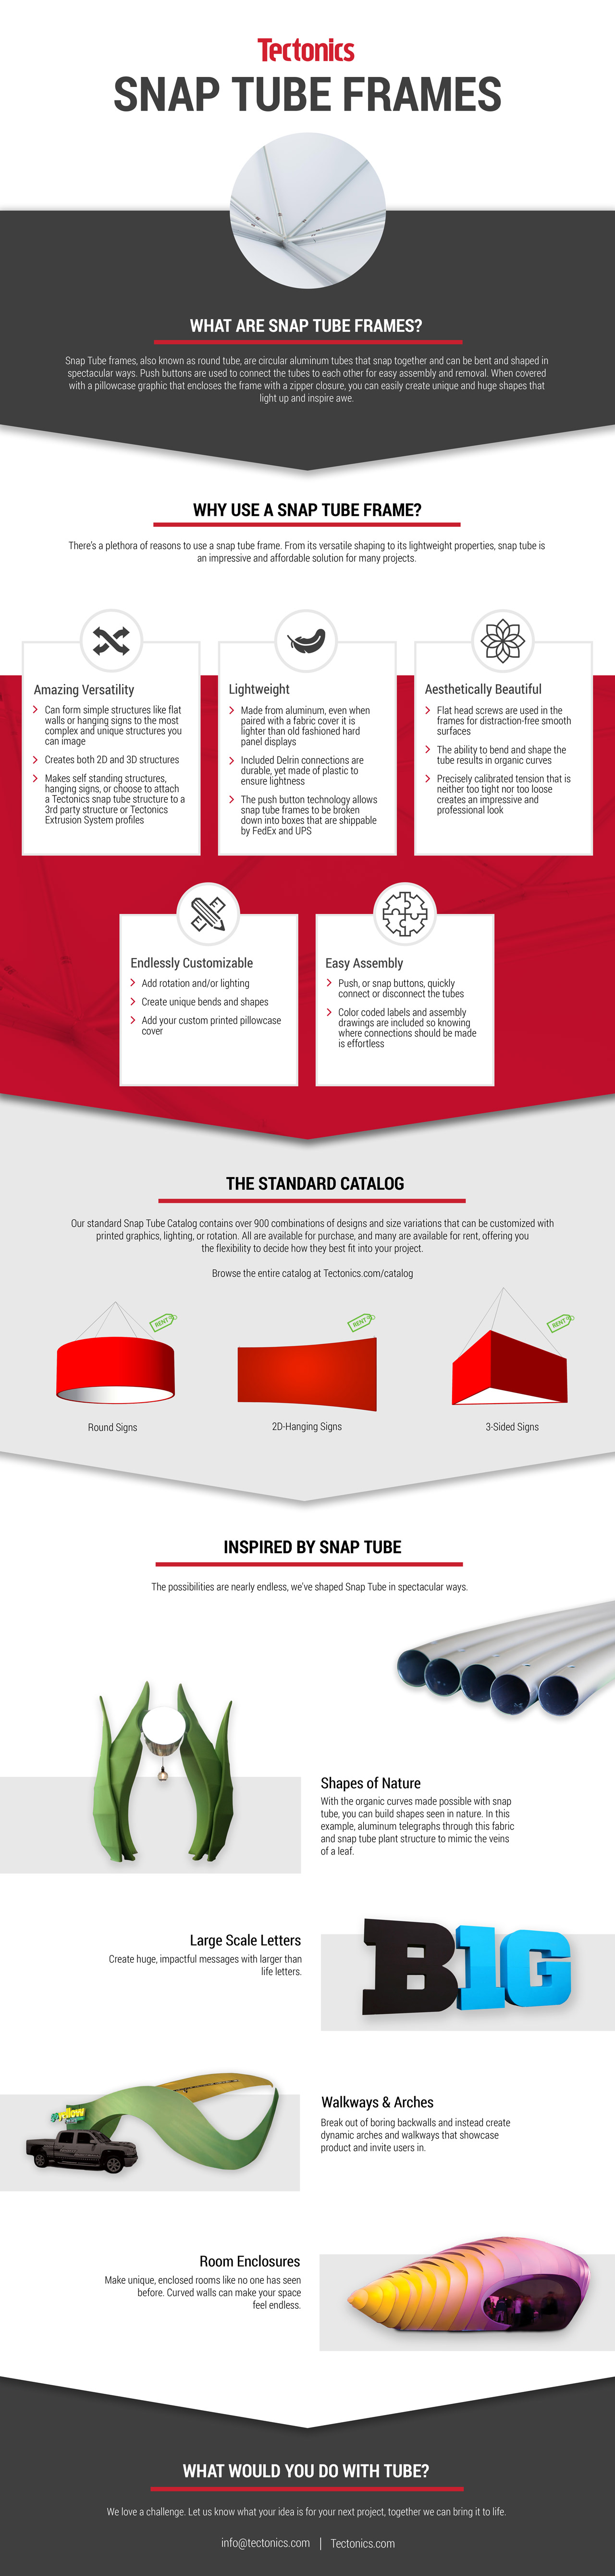 Snap Tube Infographic: What Snap Tube is, Why to use it, and Inspirational examples of Snap Tube projects.